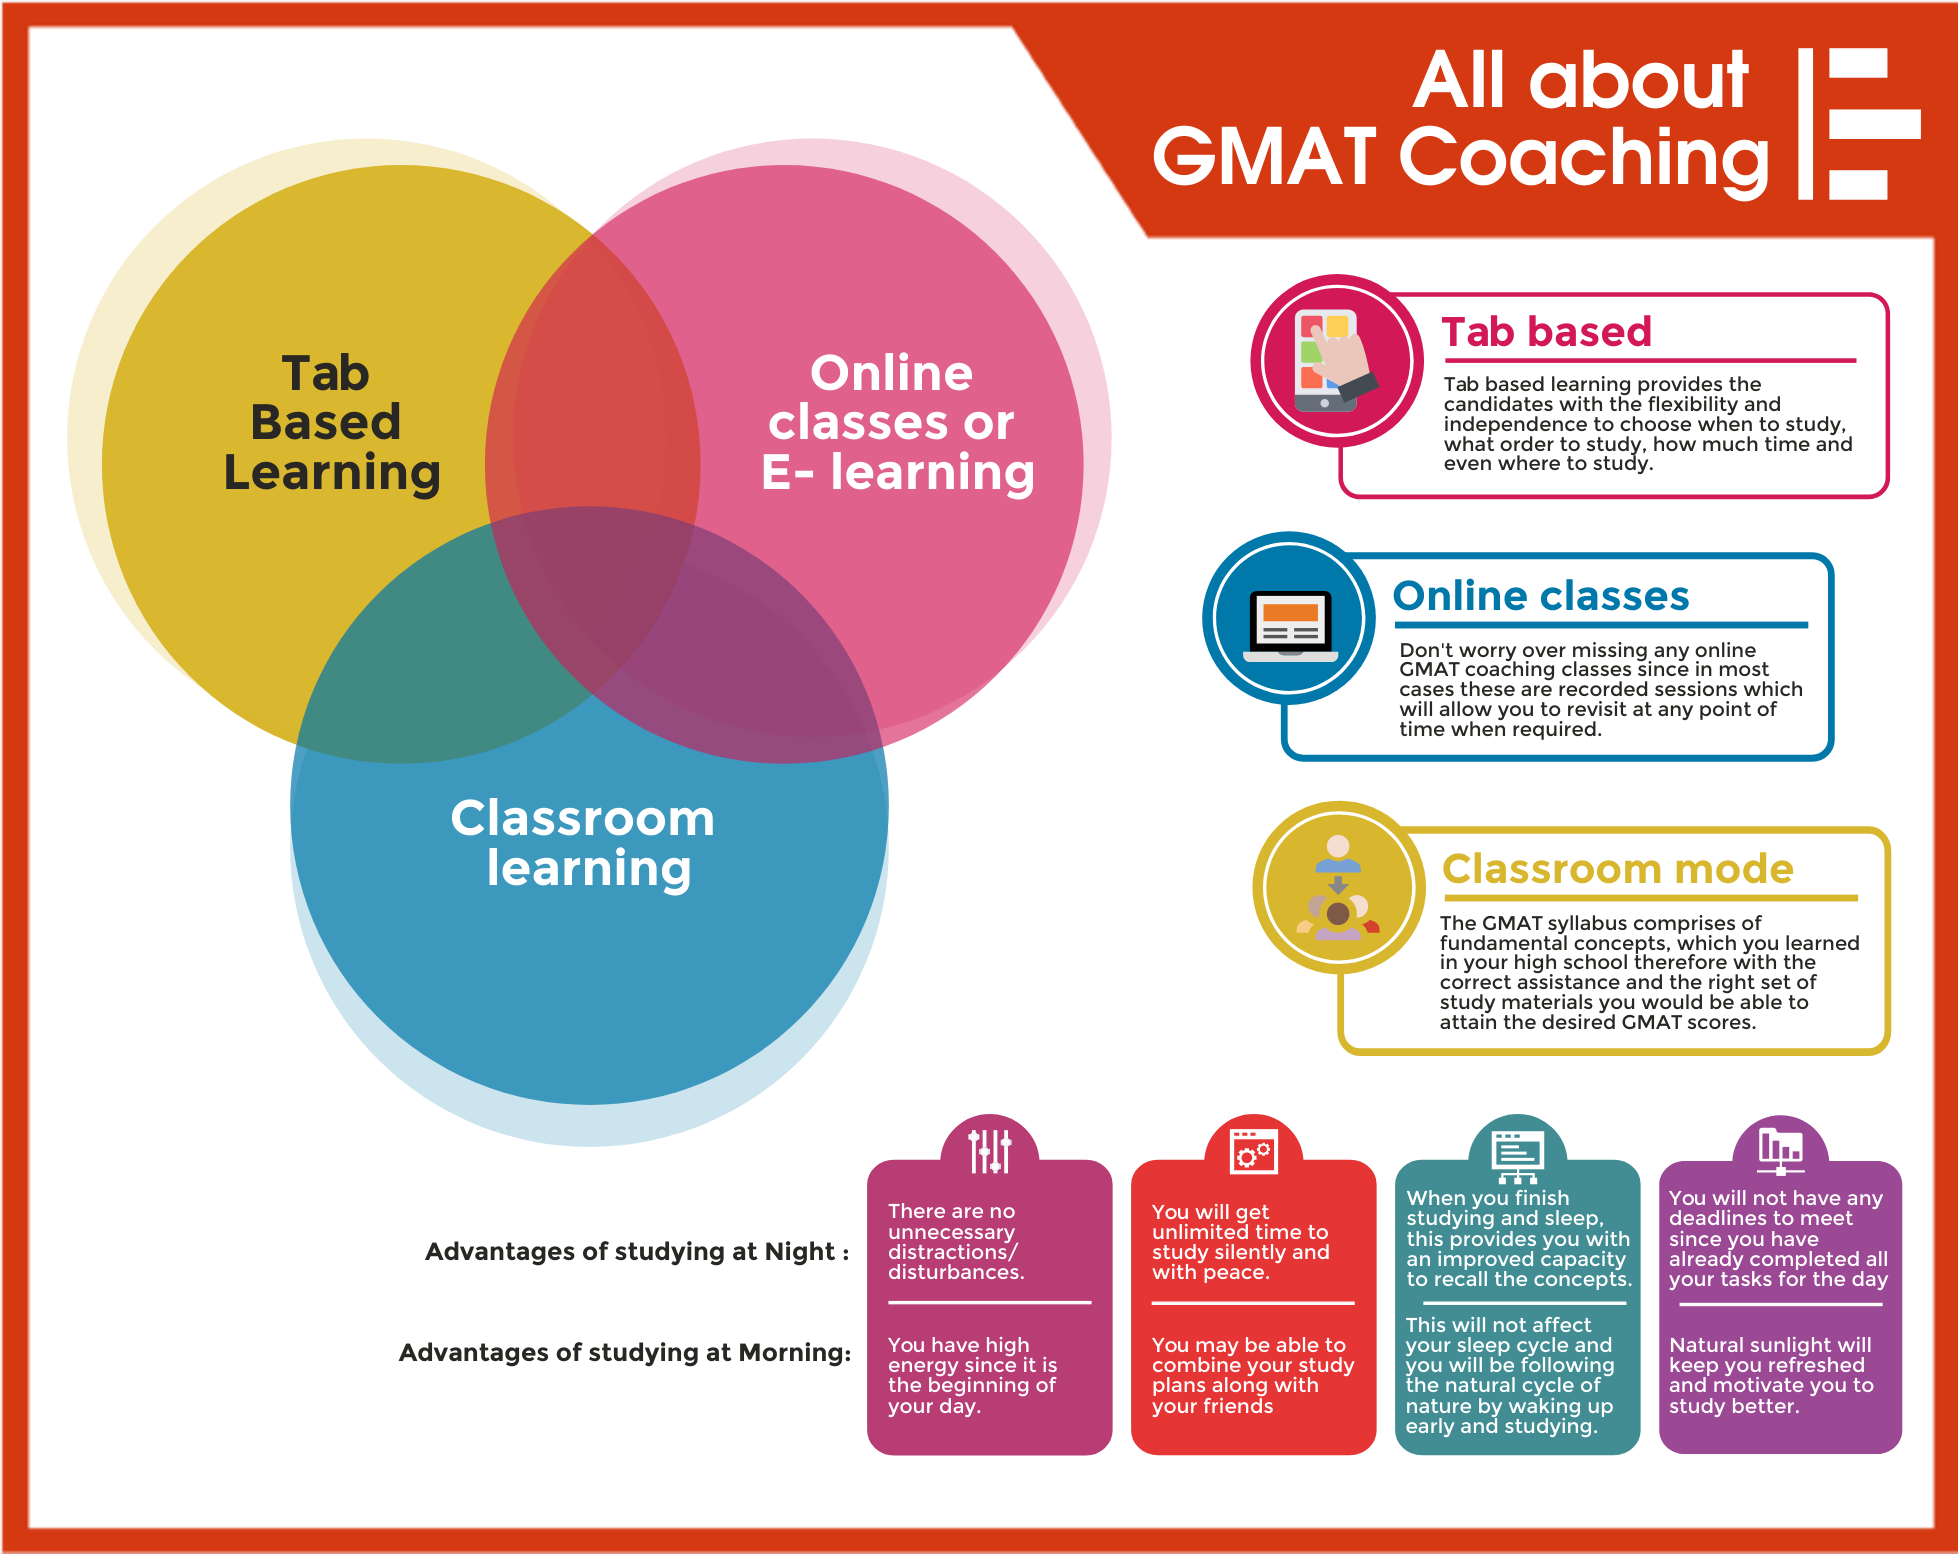 All About GMAT Coaching